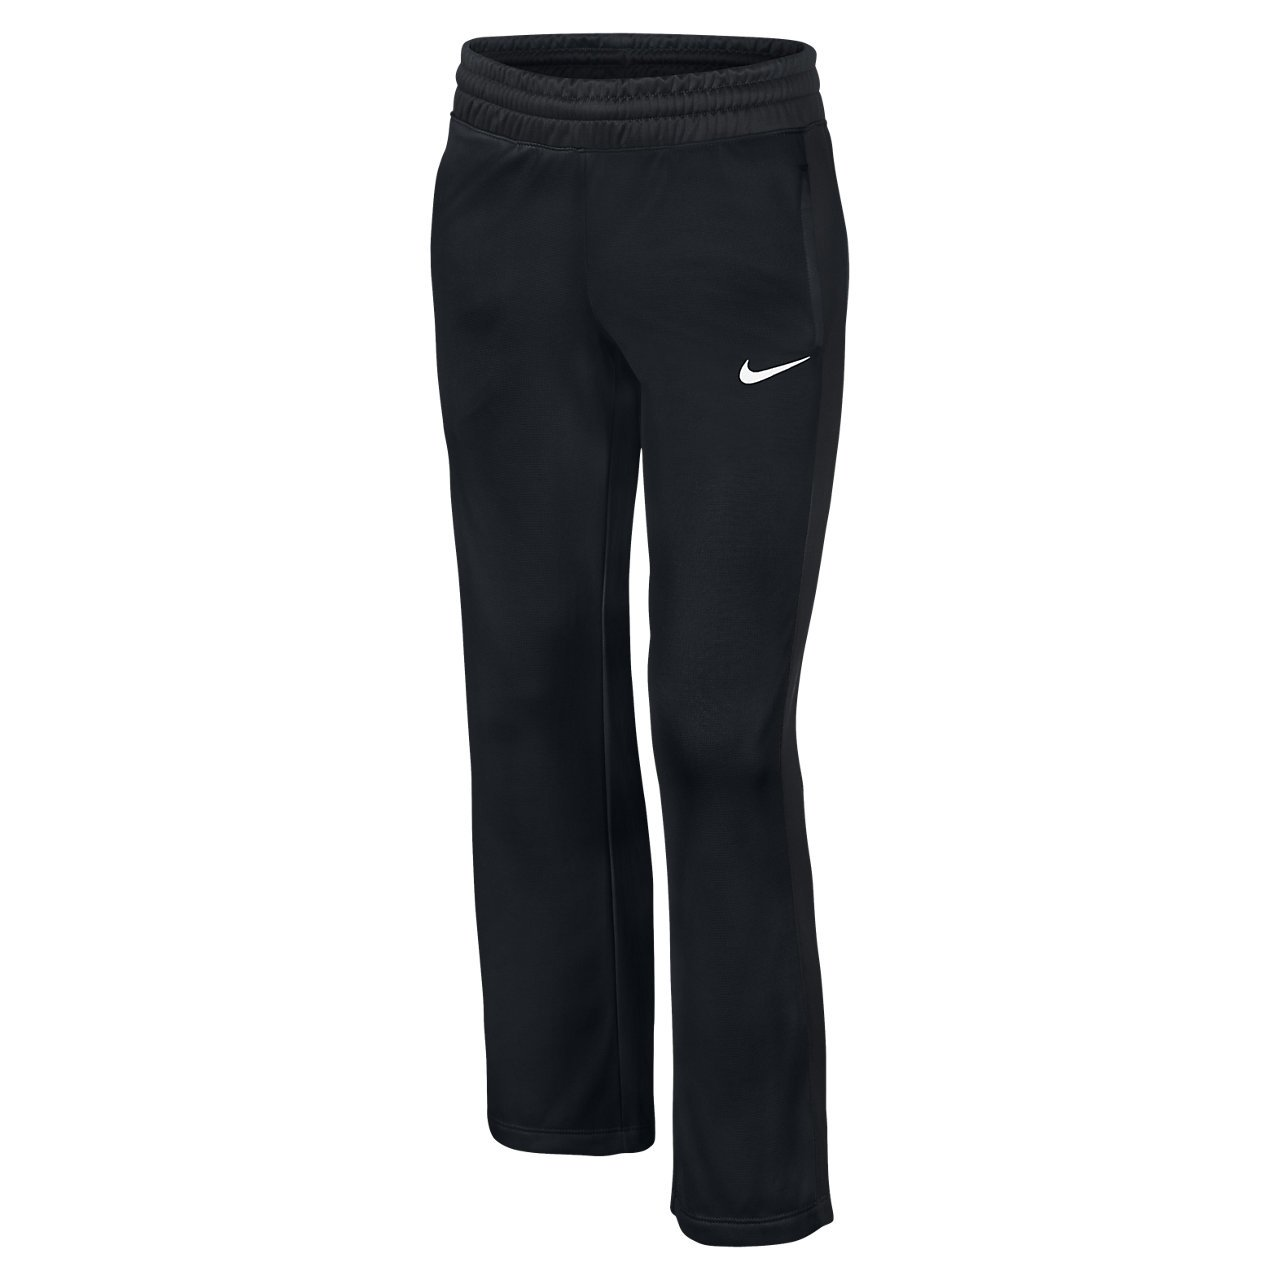 086cb432f6254 Amazon.com: Nike Girls' Ko 3.0 Fleece Pants (Little Big Kids): Clothing